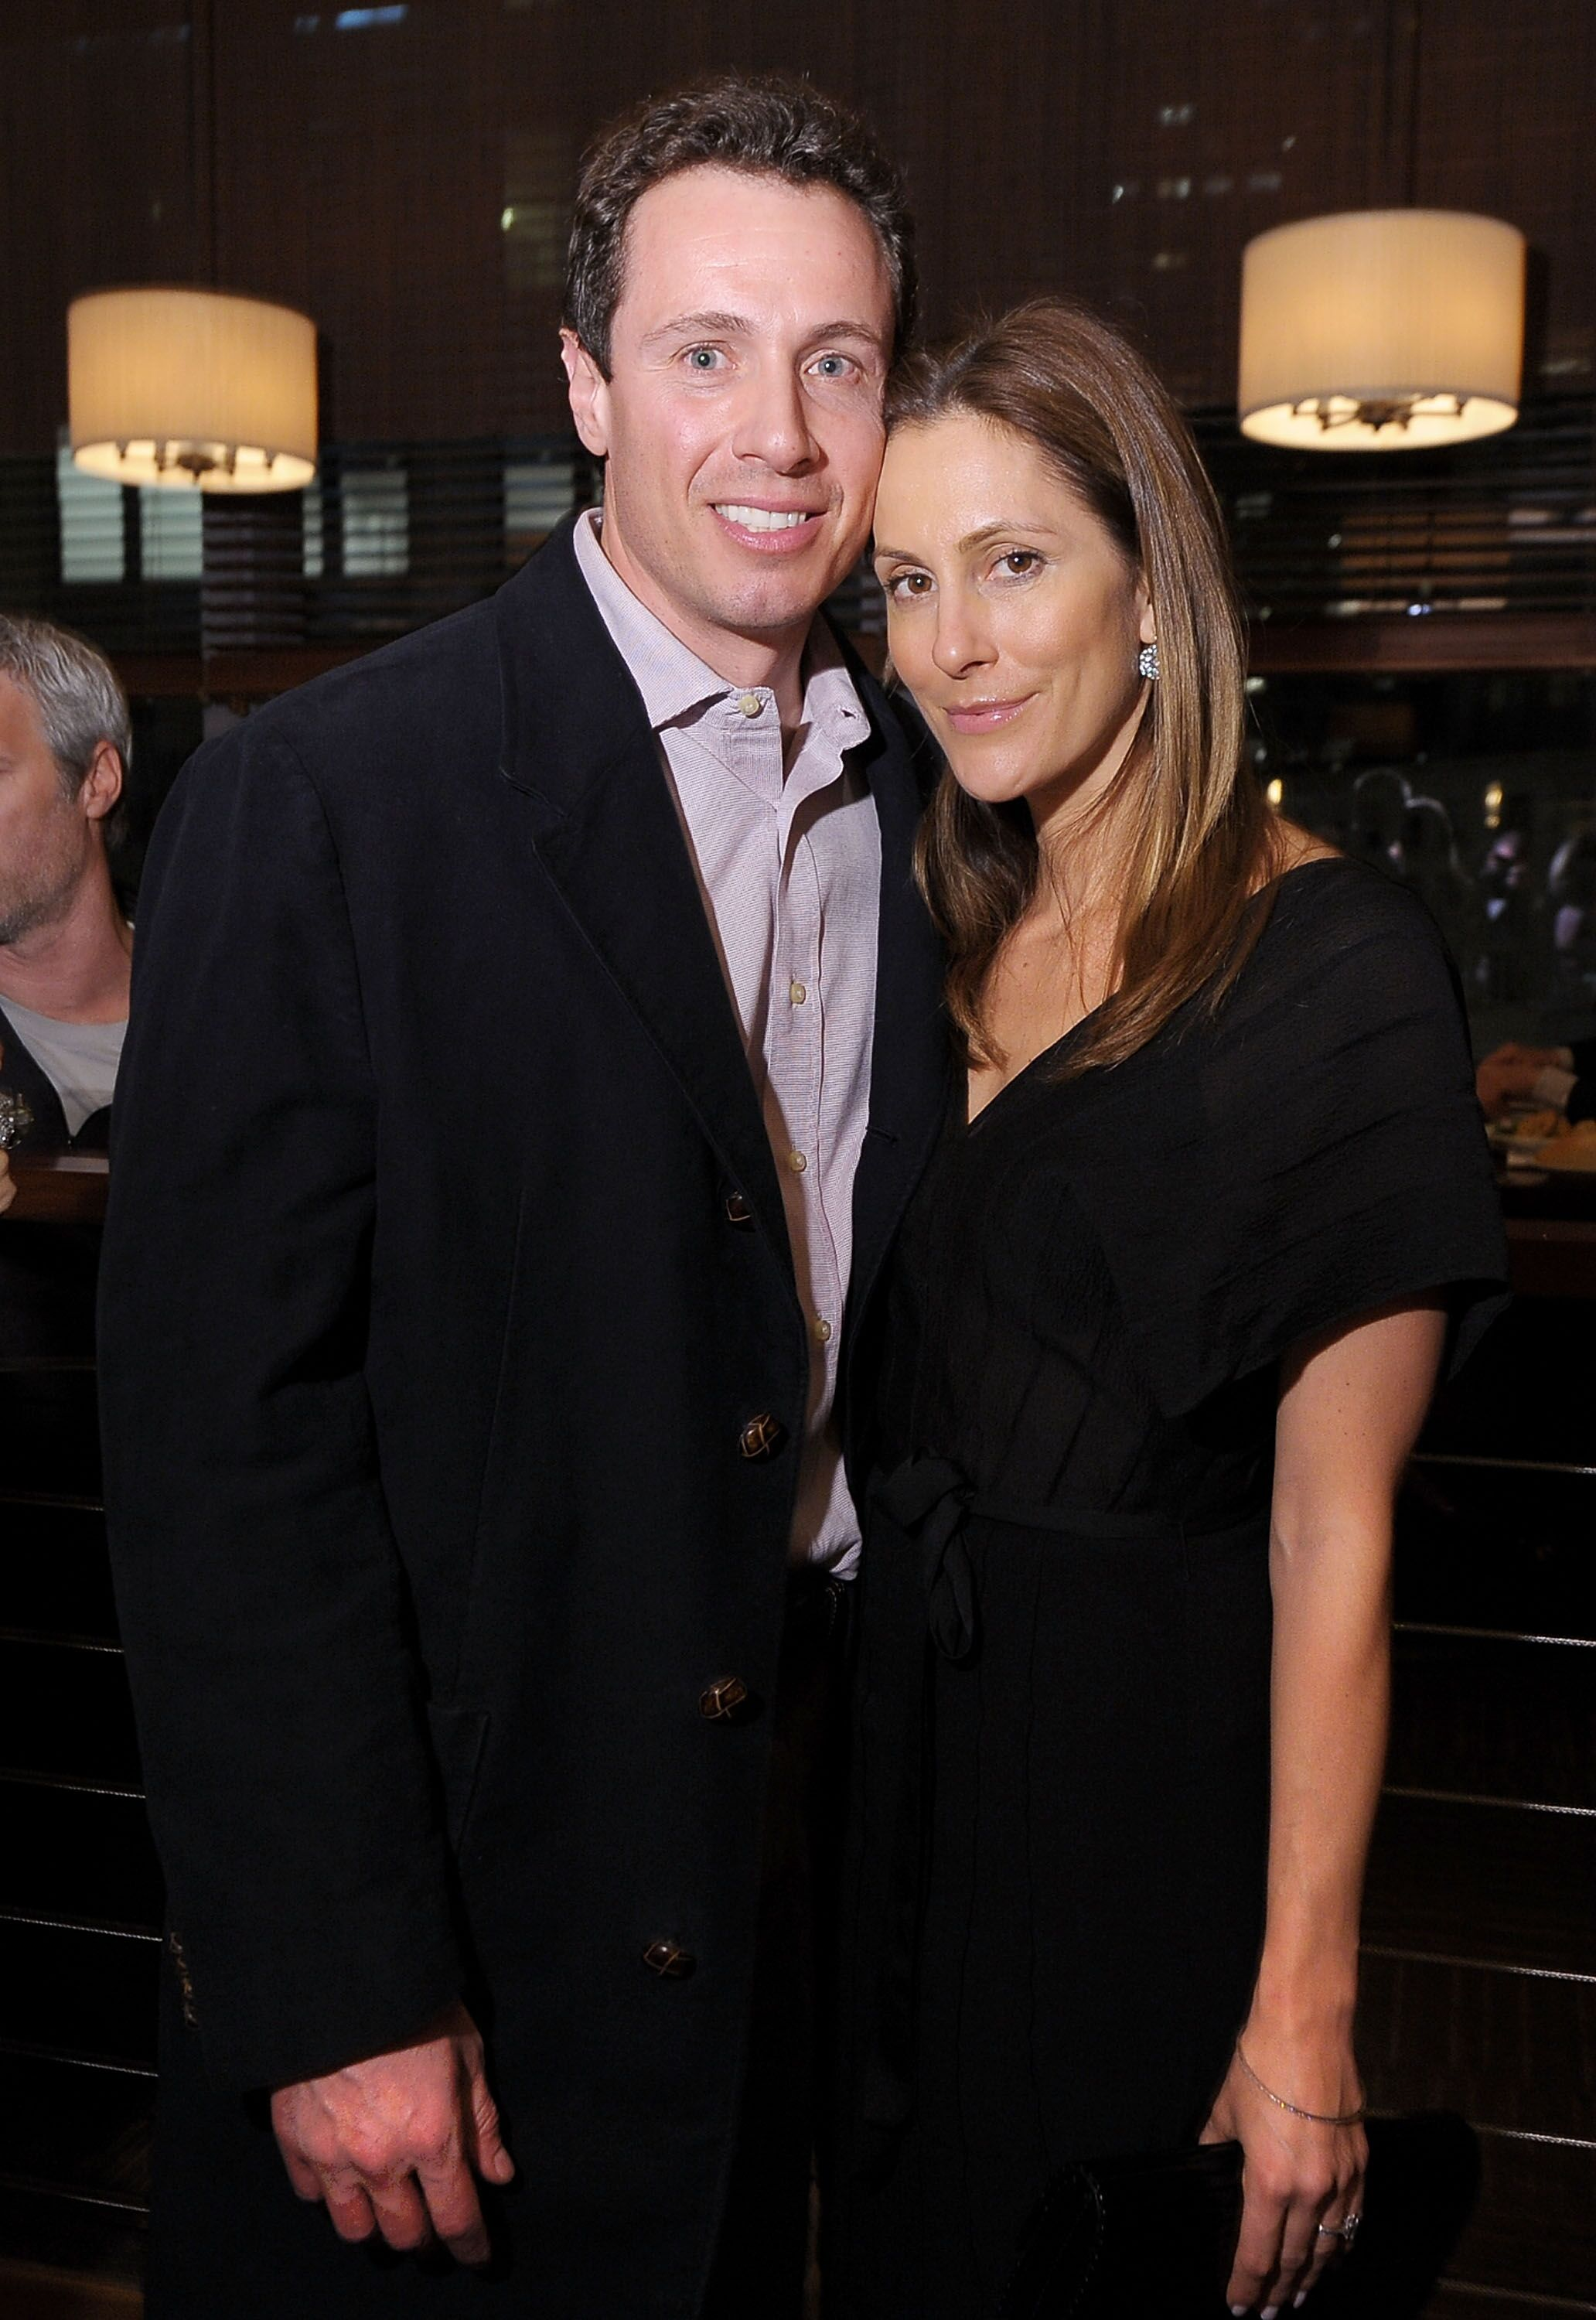 """Anchorman Chris Cuomo and wife, Gotham magazine editor-in-chief Cristina Greeven Cuomo attend the HBO Documentary Screening Of """"His Way"""" at Time Warner Center on March 30, 2011 